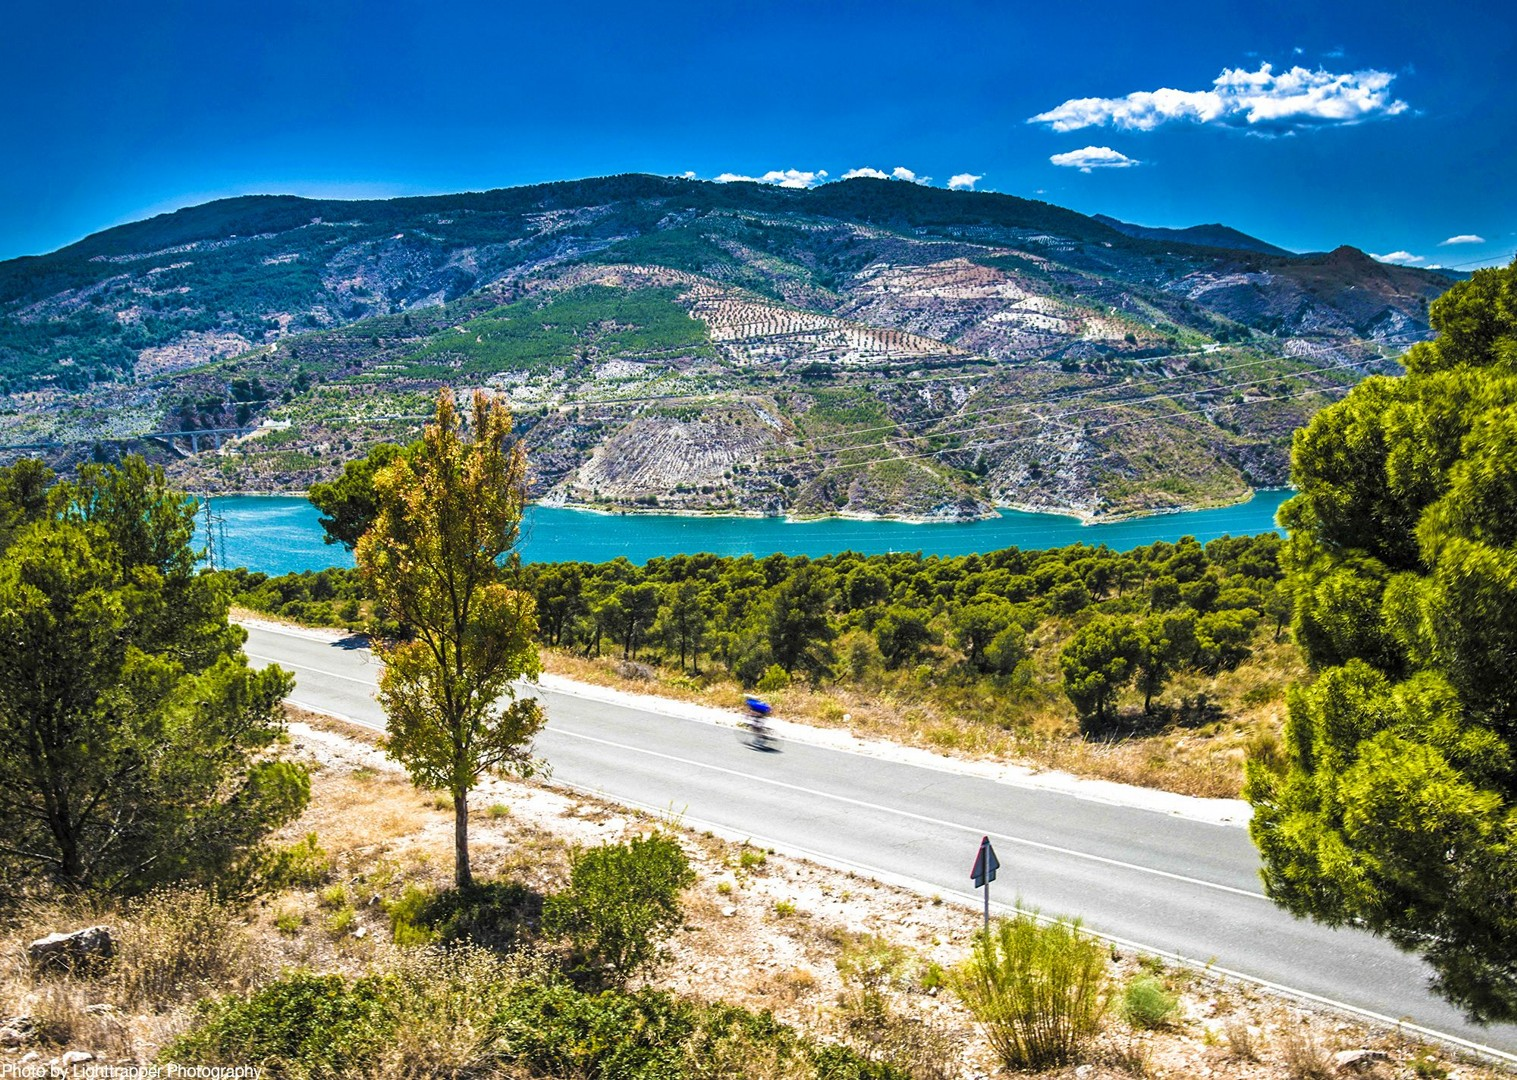 stunning-limestone-mountains-andalucia-road-cycling.jpg - Southern Spain - Roads of Ronda - Self-Guided Road Cycling Holiday - Road Cycling